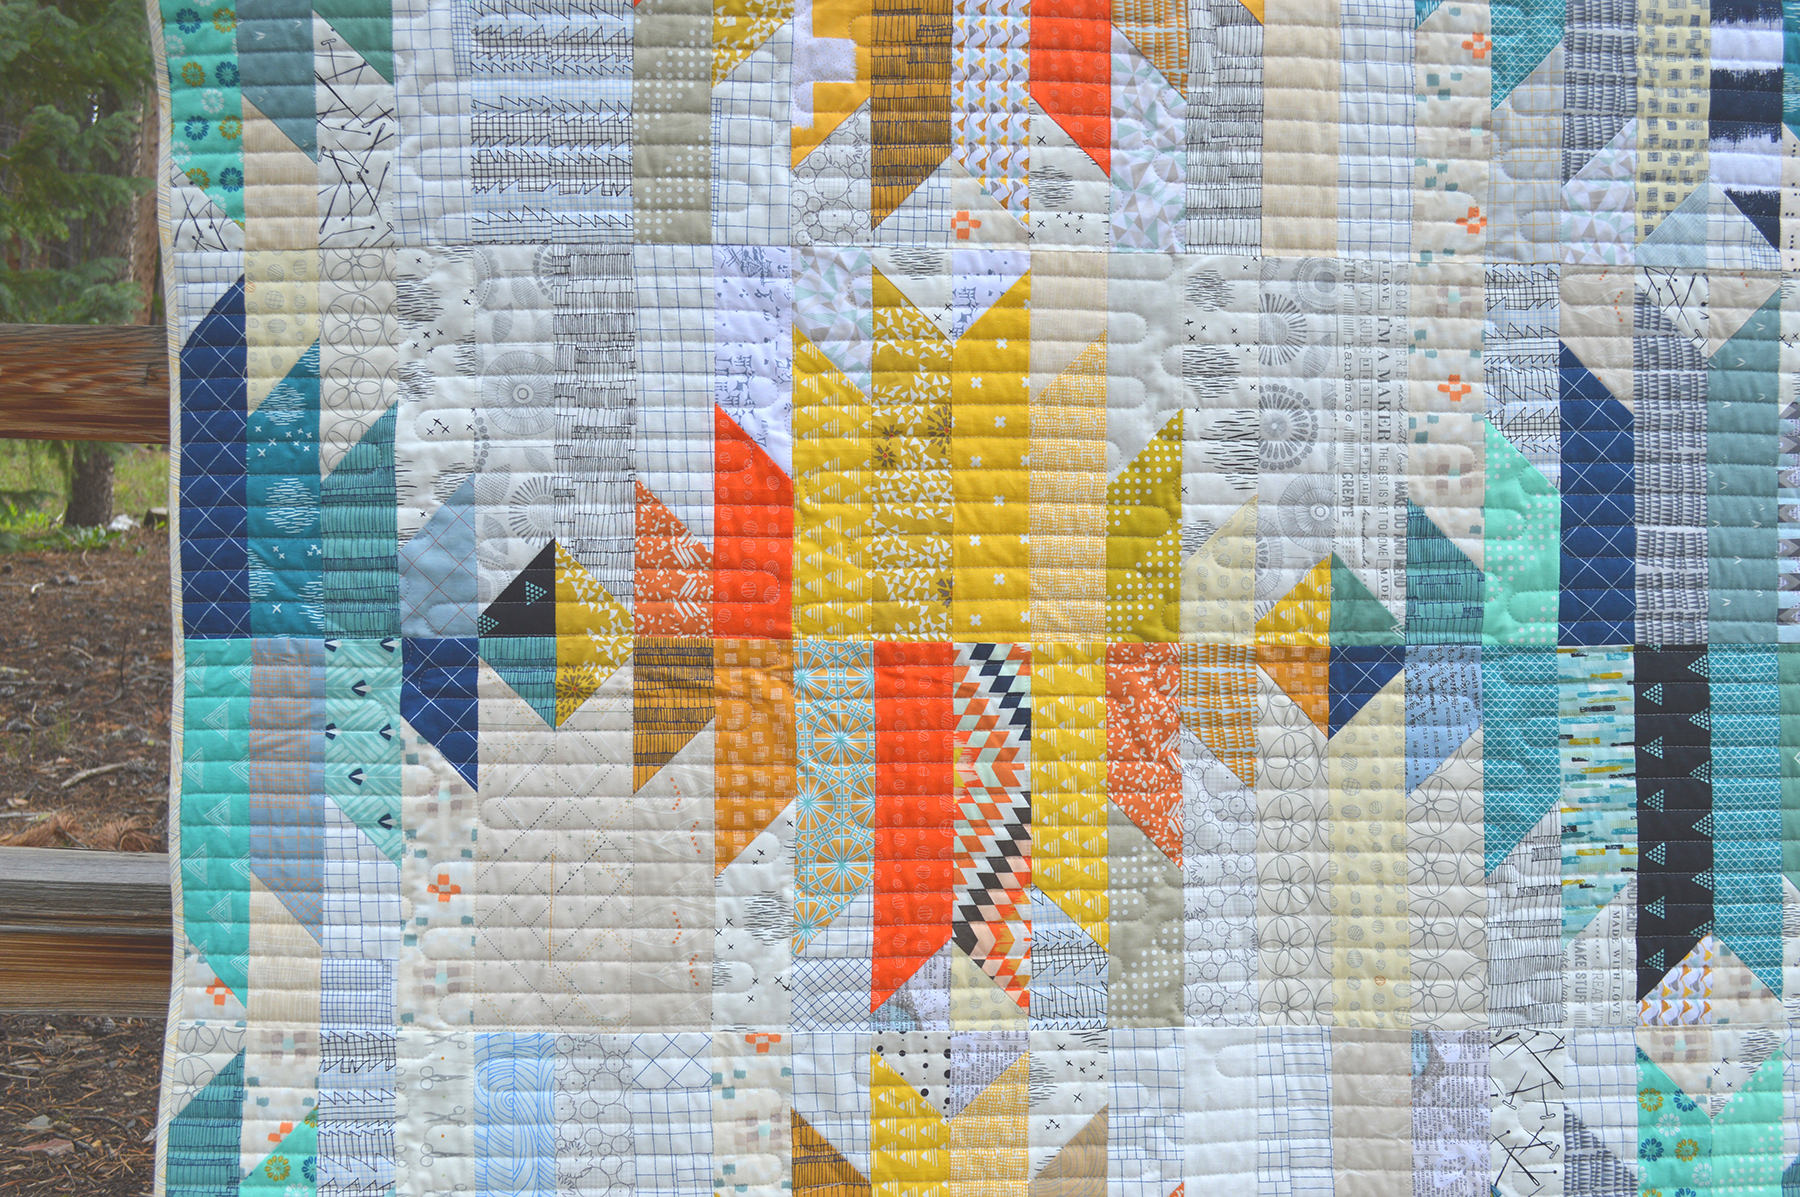 patchwork and beese december elizabeth quilt homes gardens issue books com amazon better quilting tisinger magazine dp american various